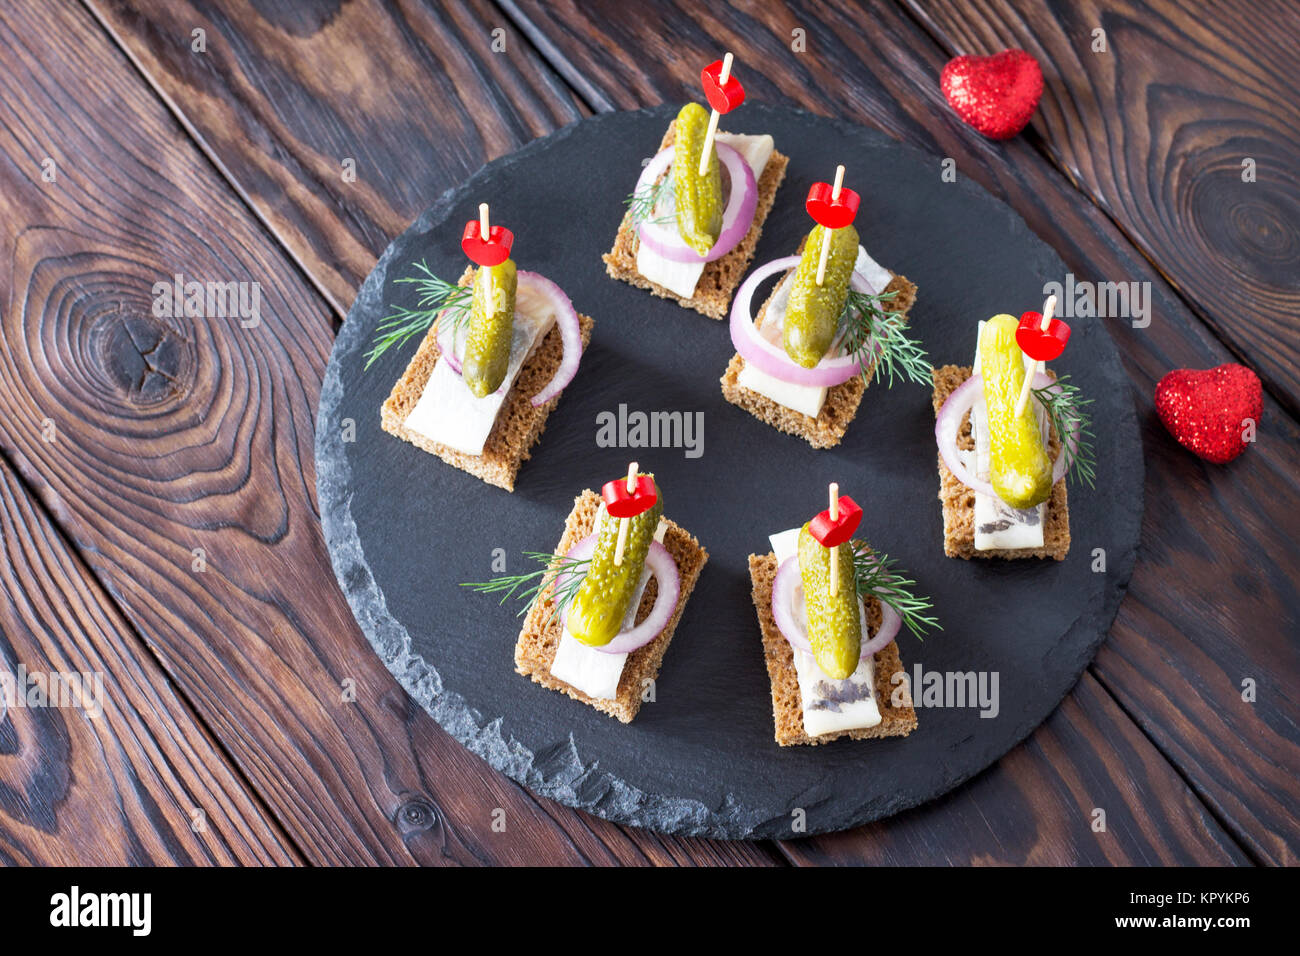 Canapes with rye bread, herring and pickles on a festive table. Valentine's day concept or wedding. - Stock Image